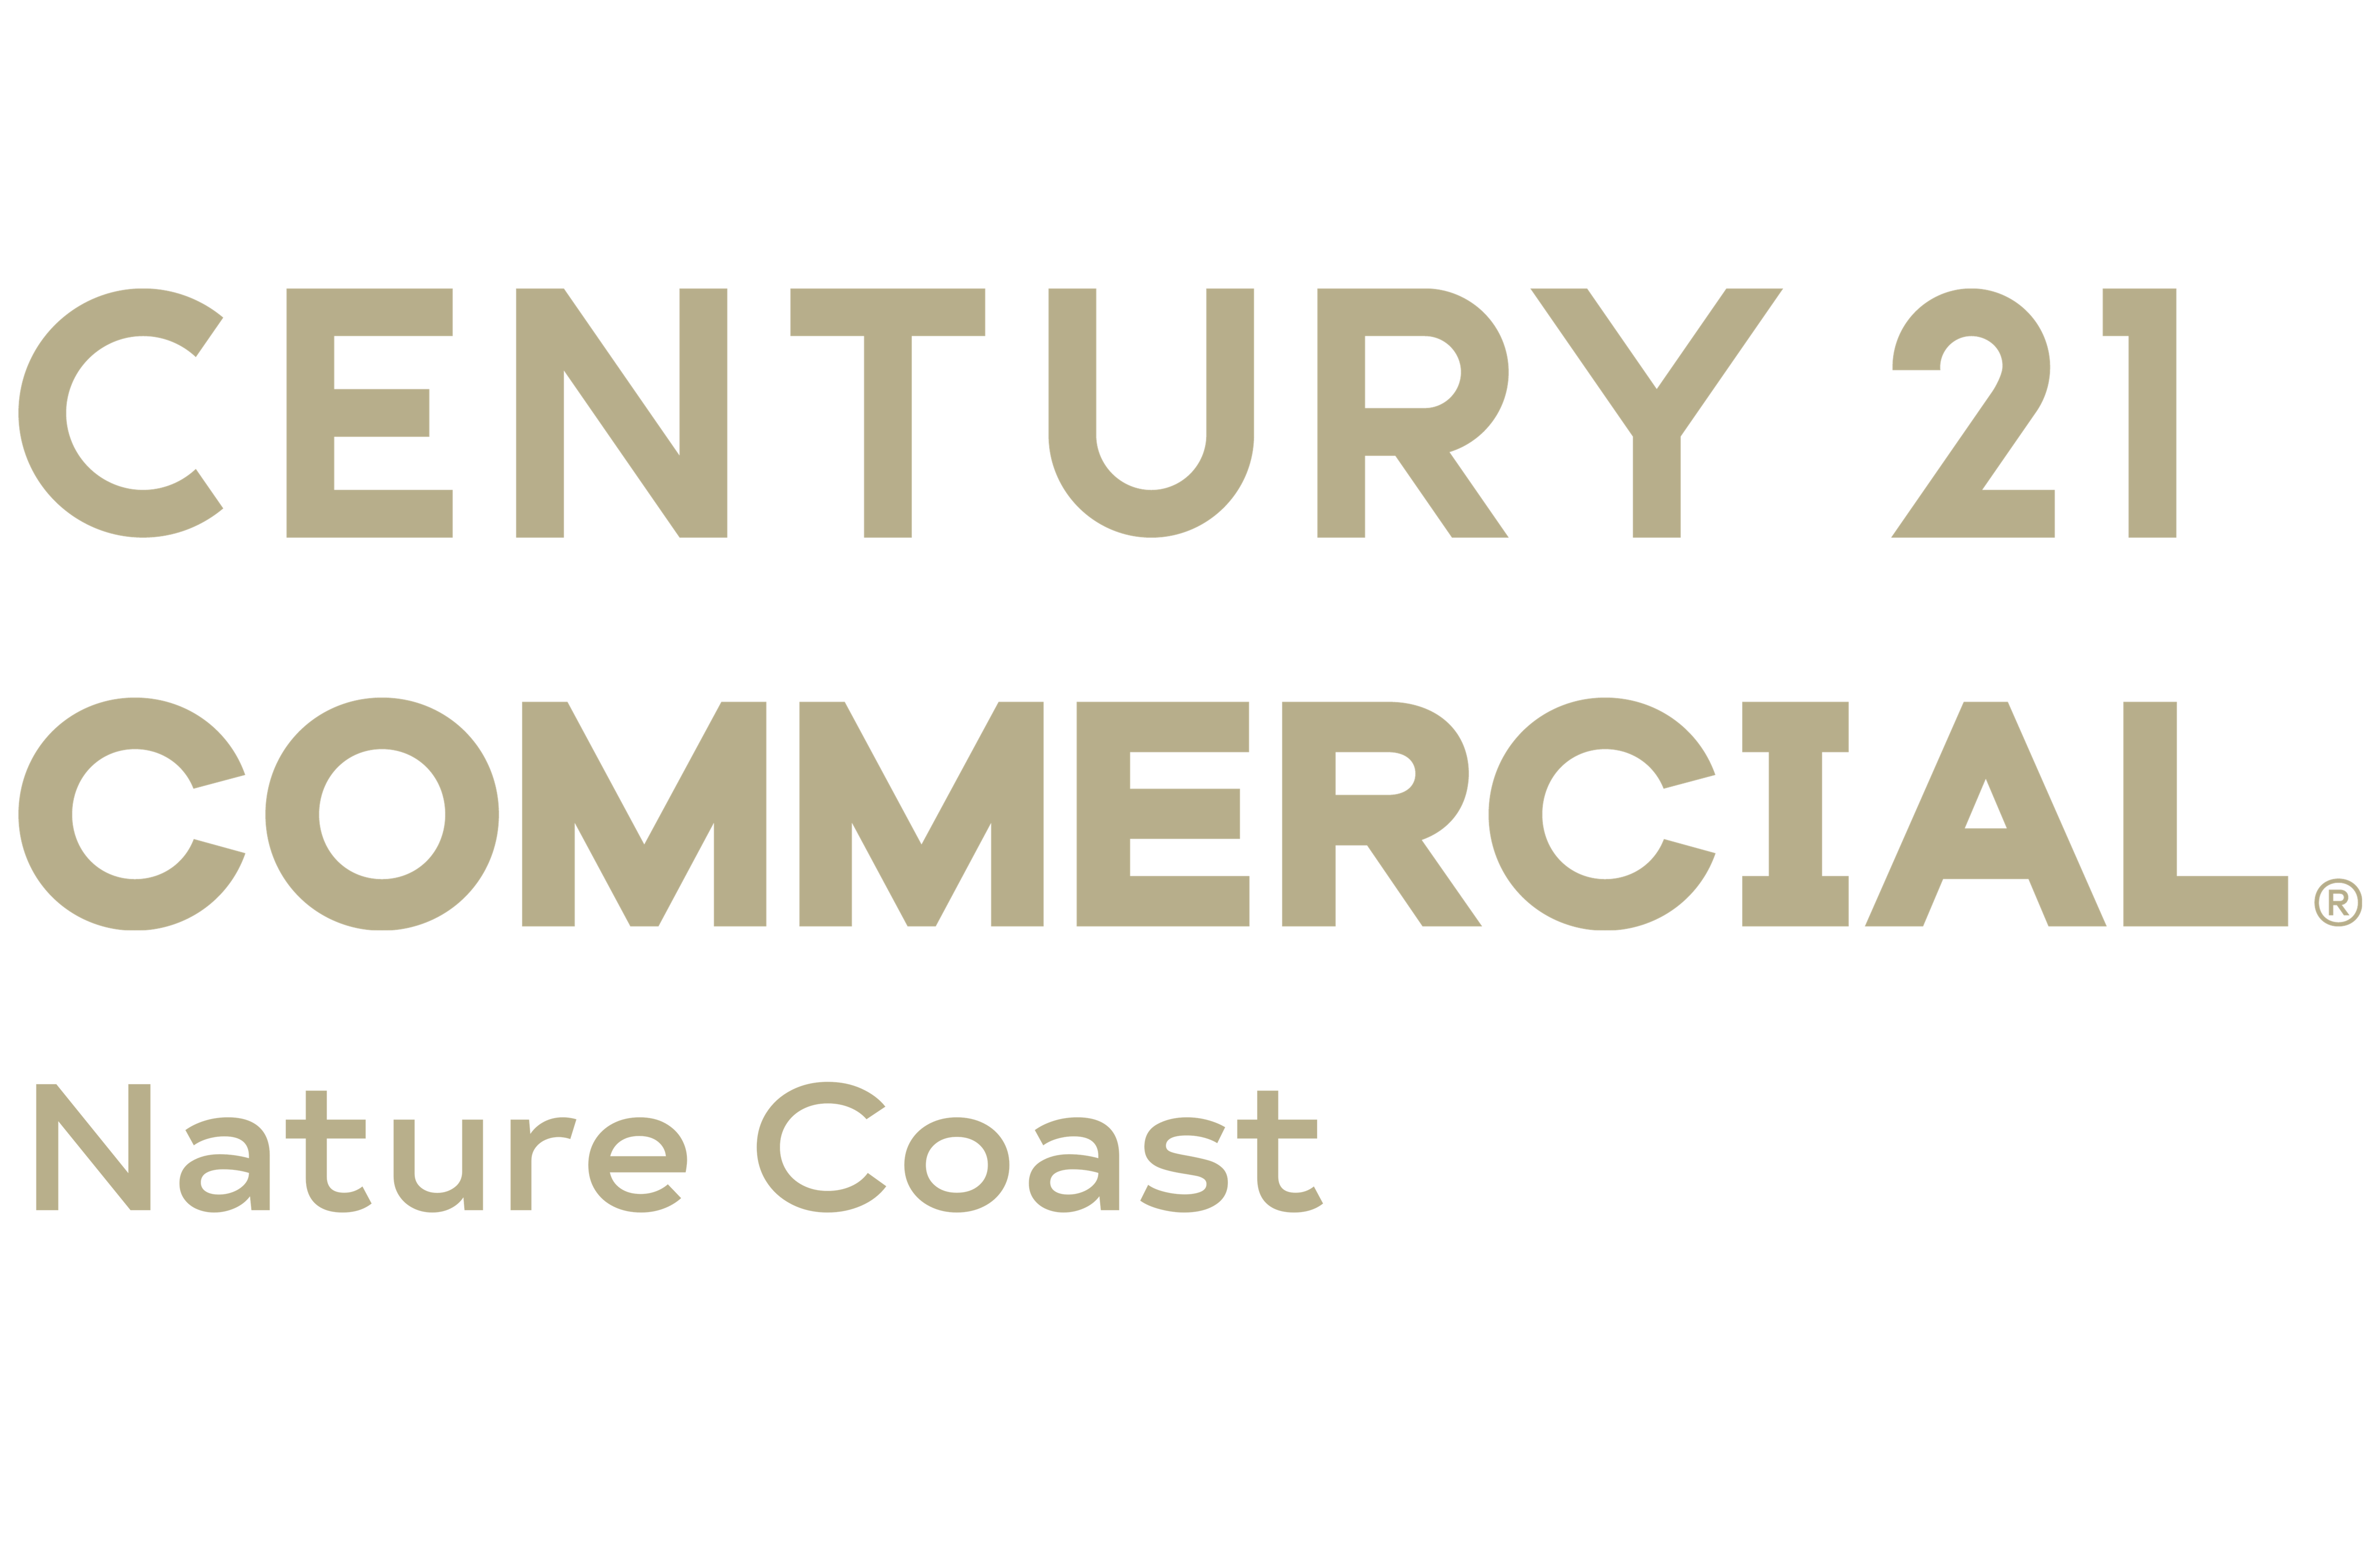 Evelyn Surrency of CENTURY 21 Nature Coast logo